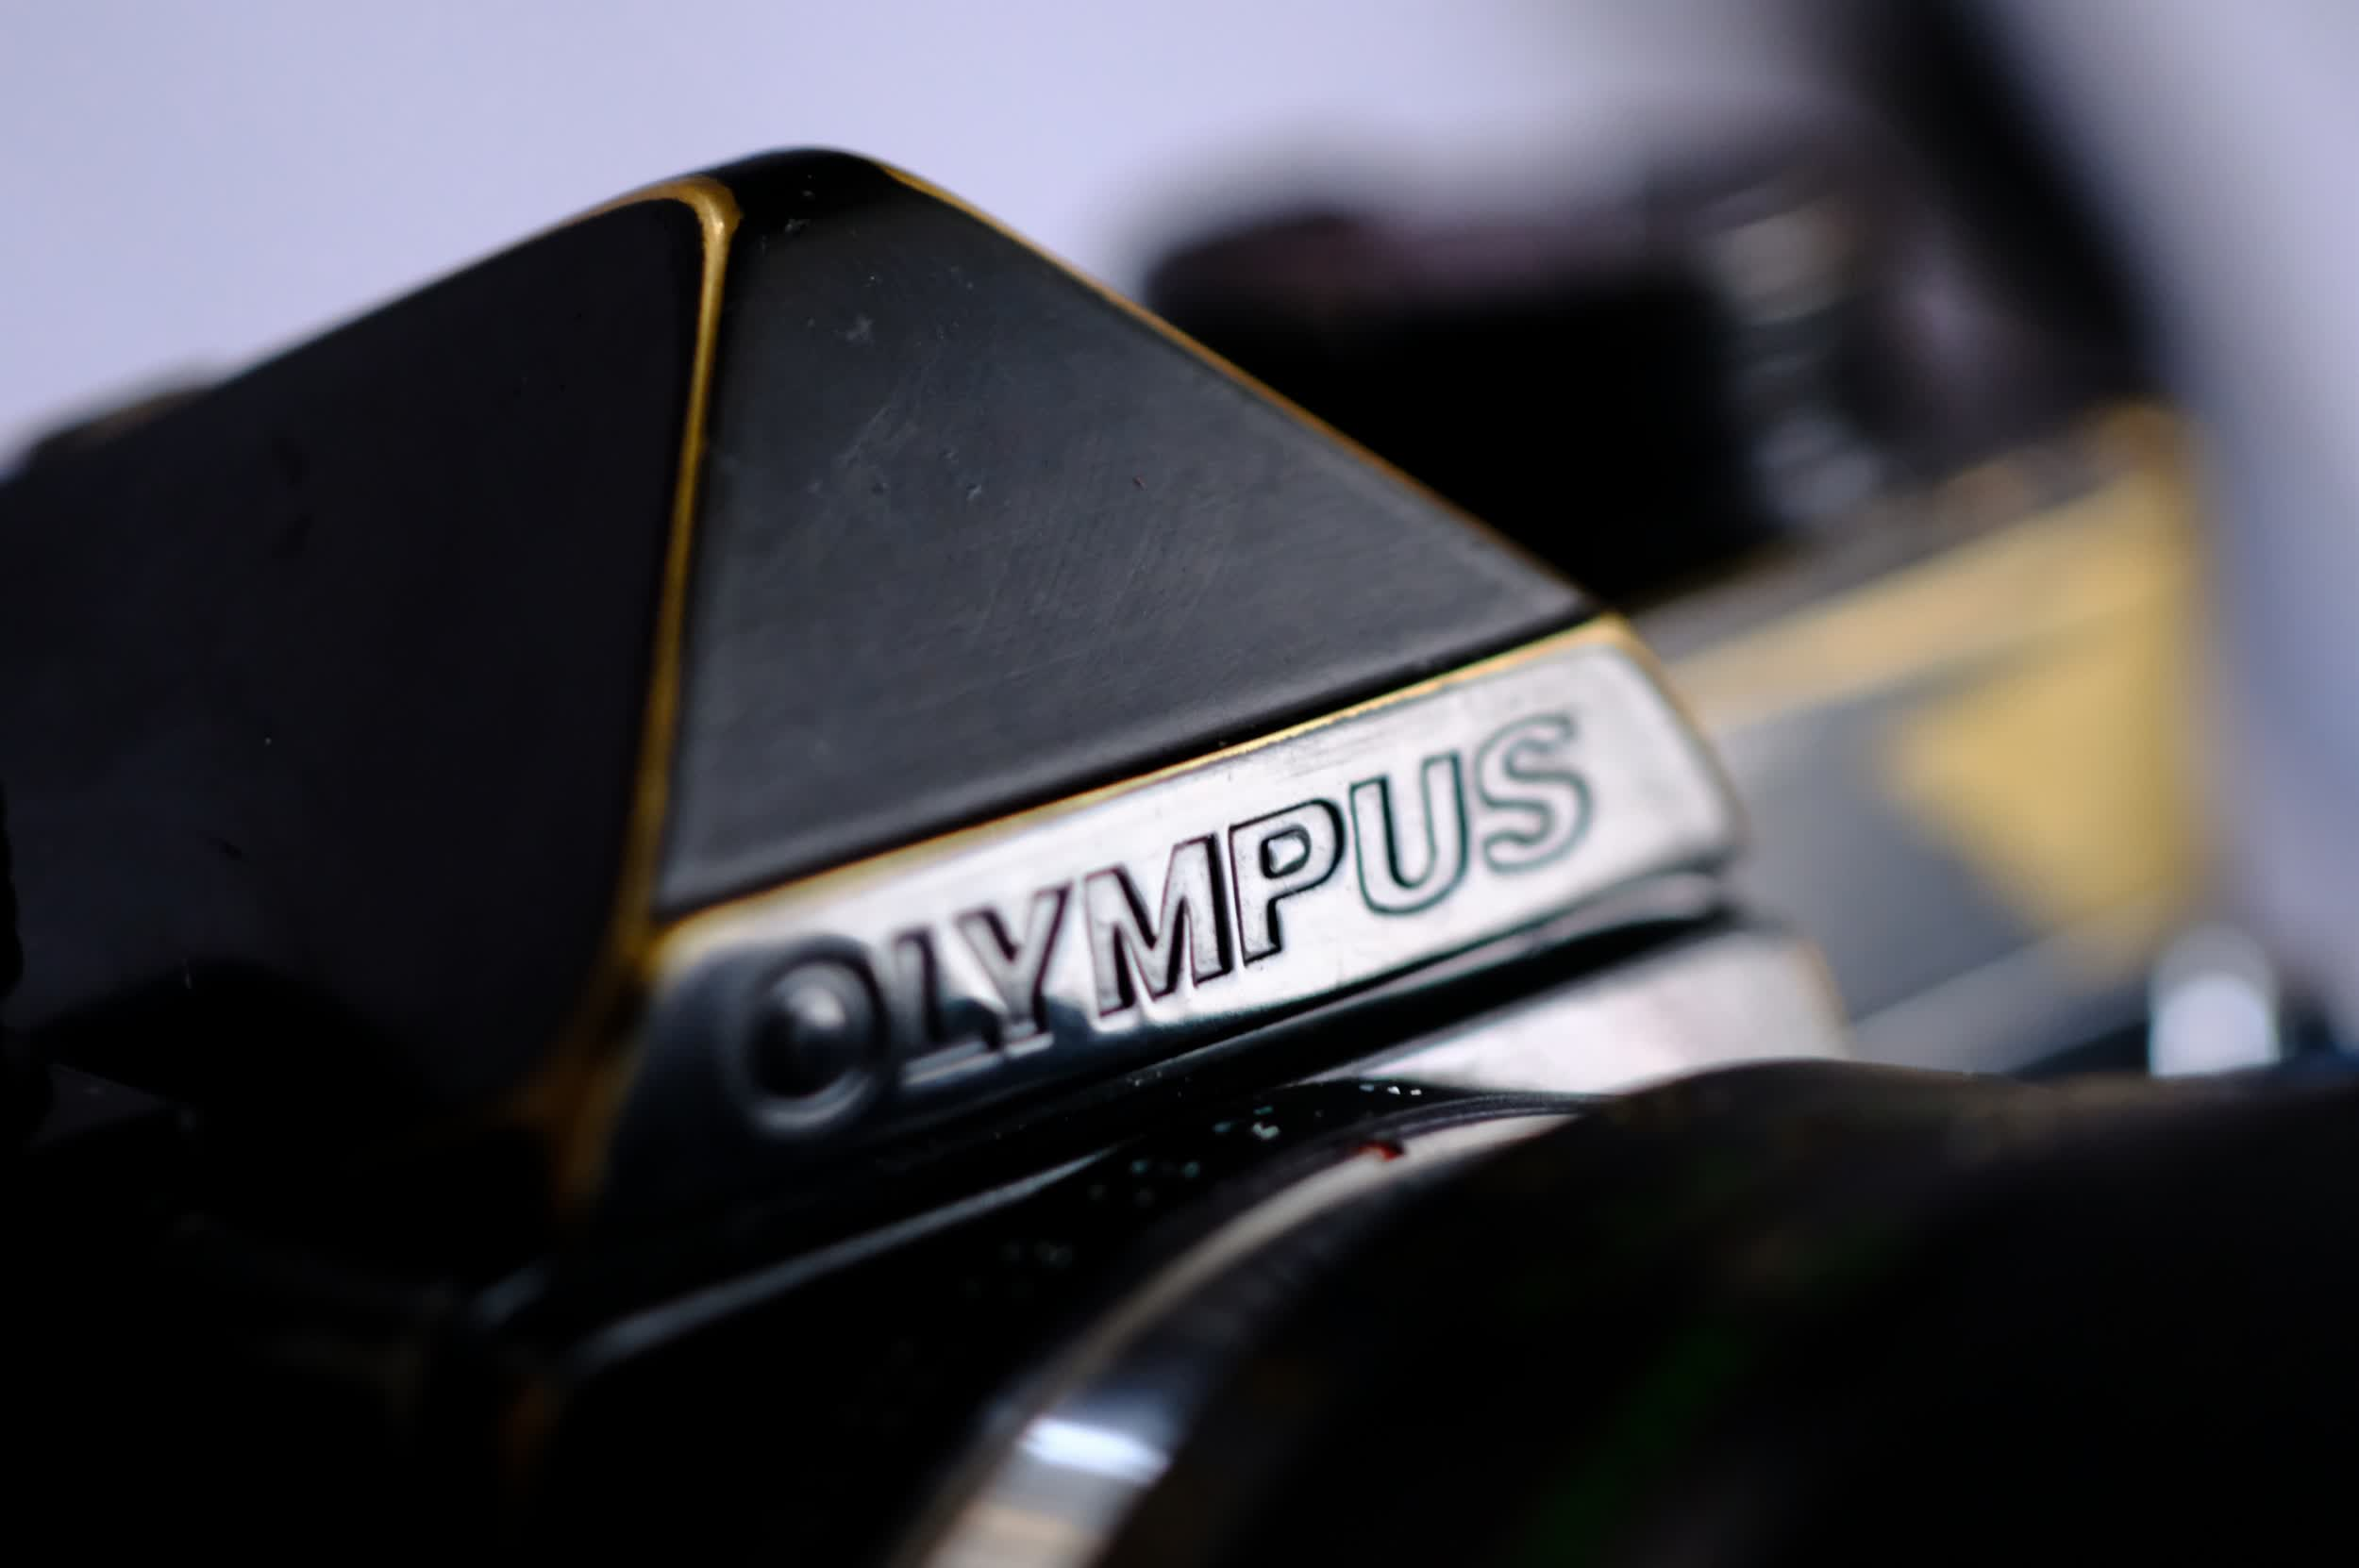 Samsung's next flagship phones may feature Olympus-branded cameras